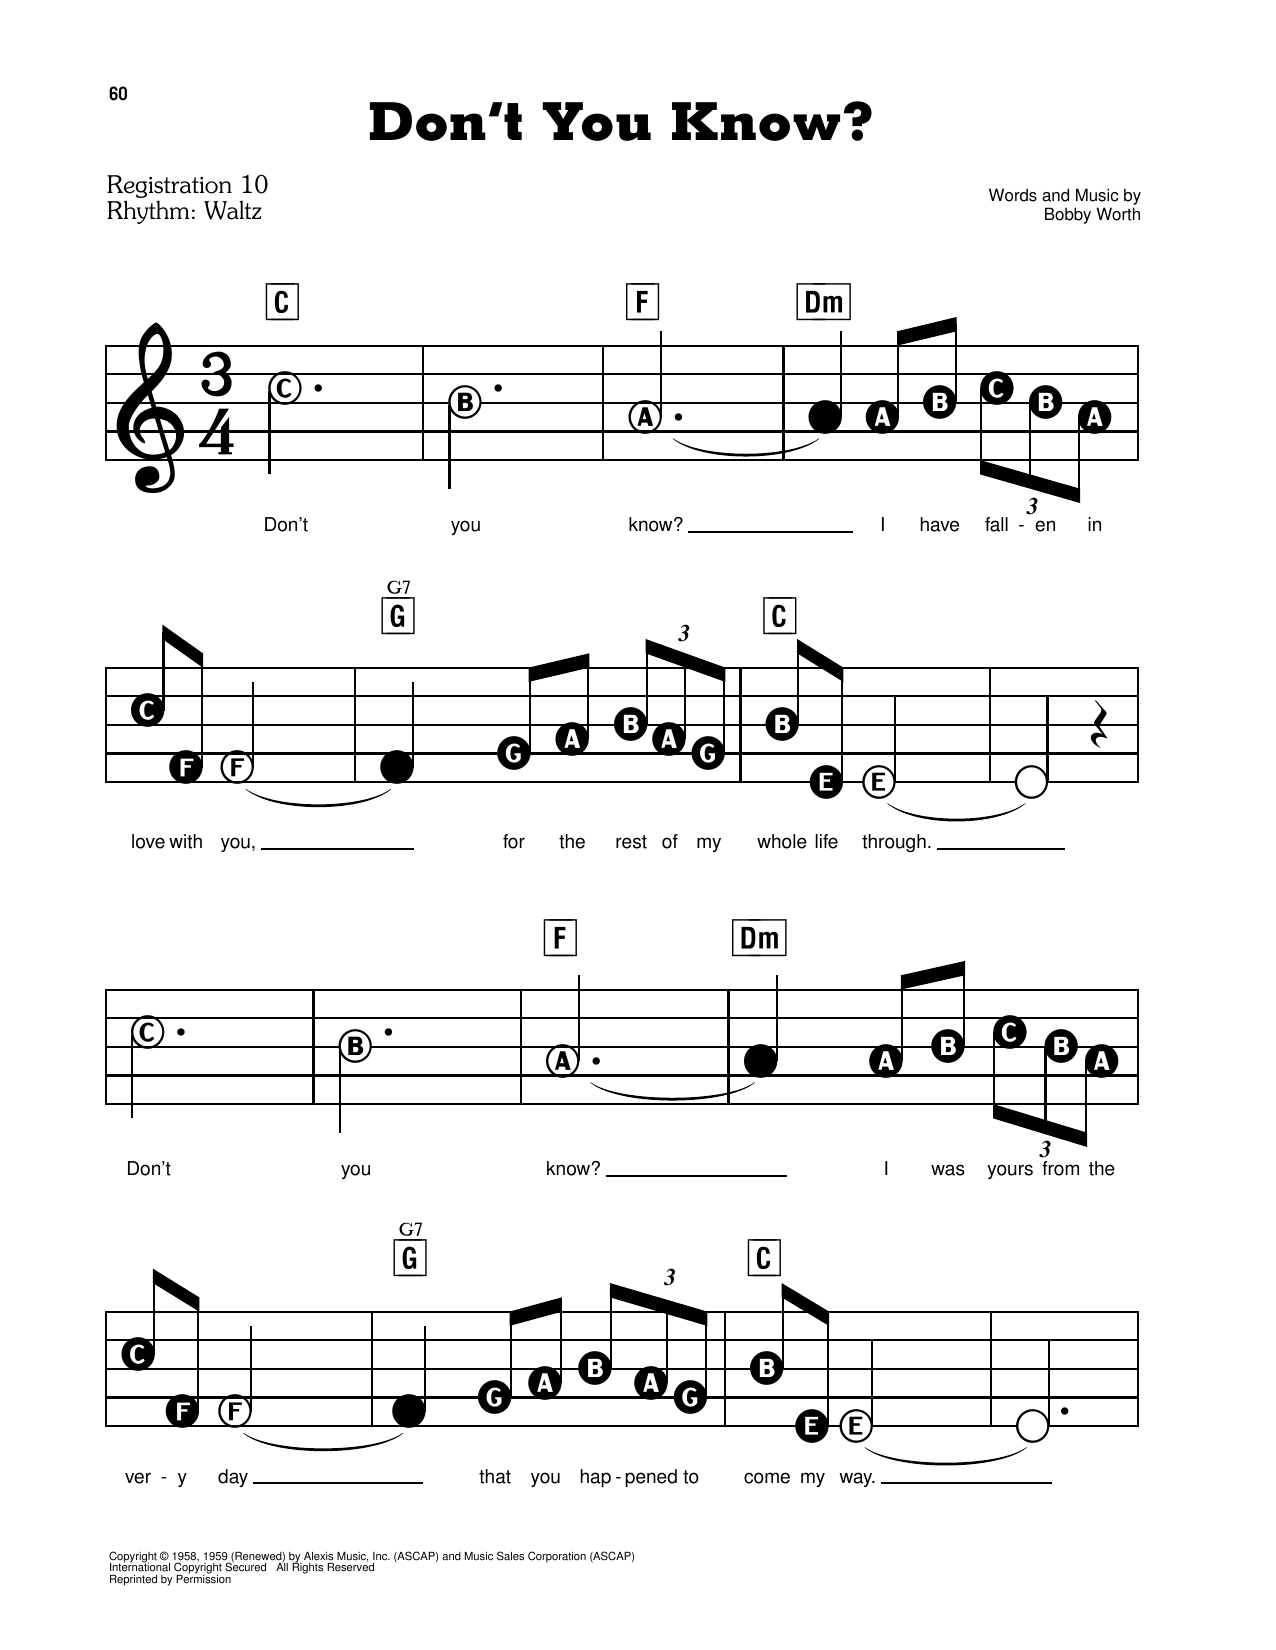 Della Reese Don't You Know? sheet music notes and chords. Download Printable PDF.